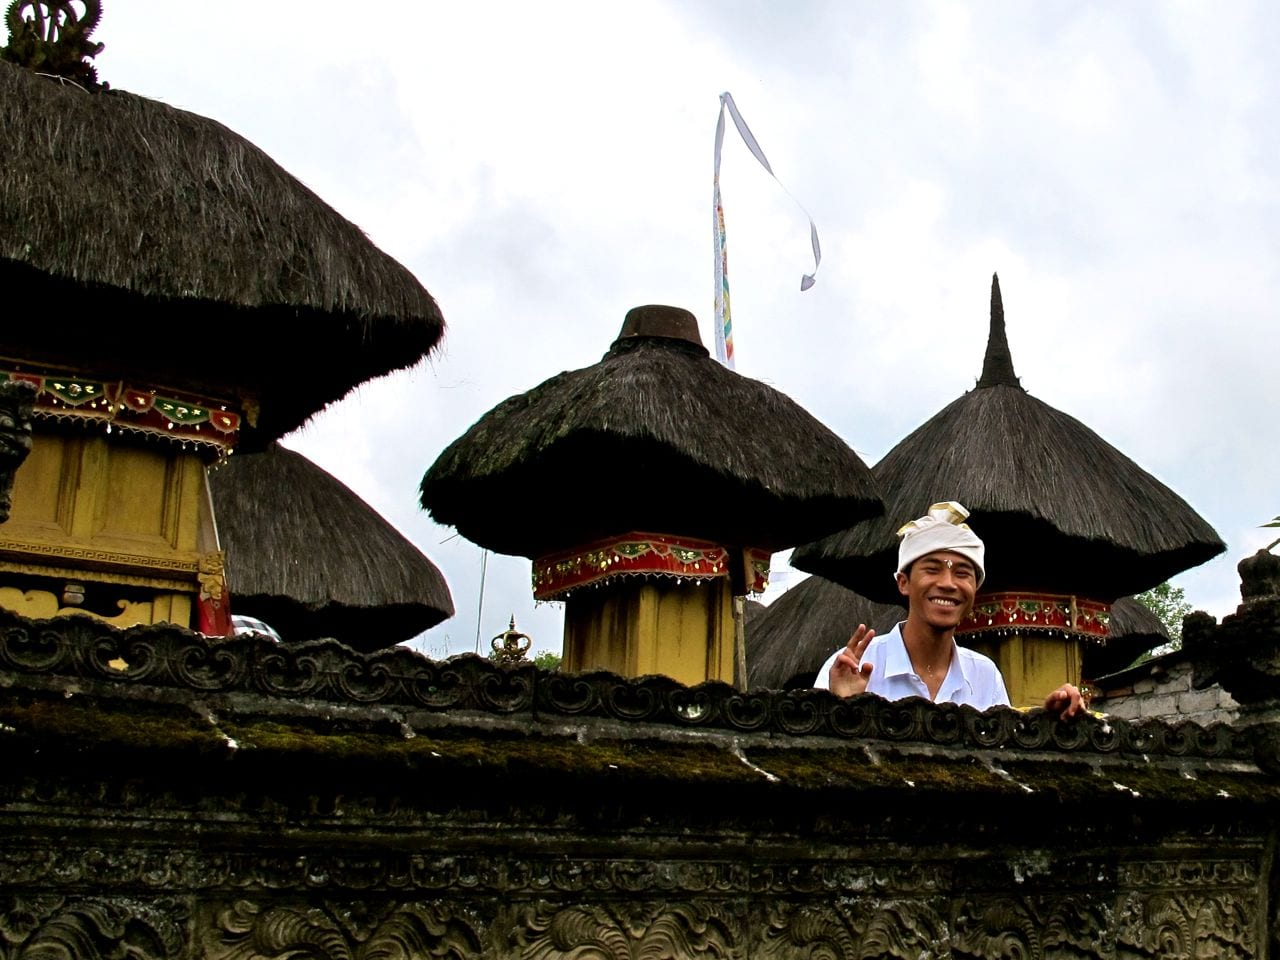 Smiling Man Bali Village